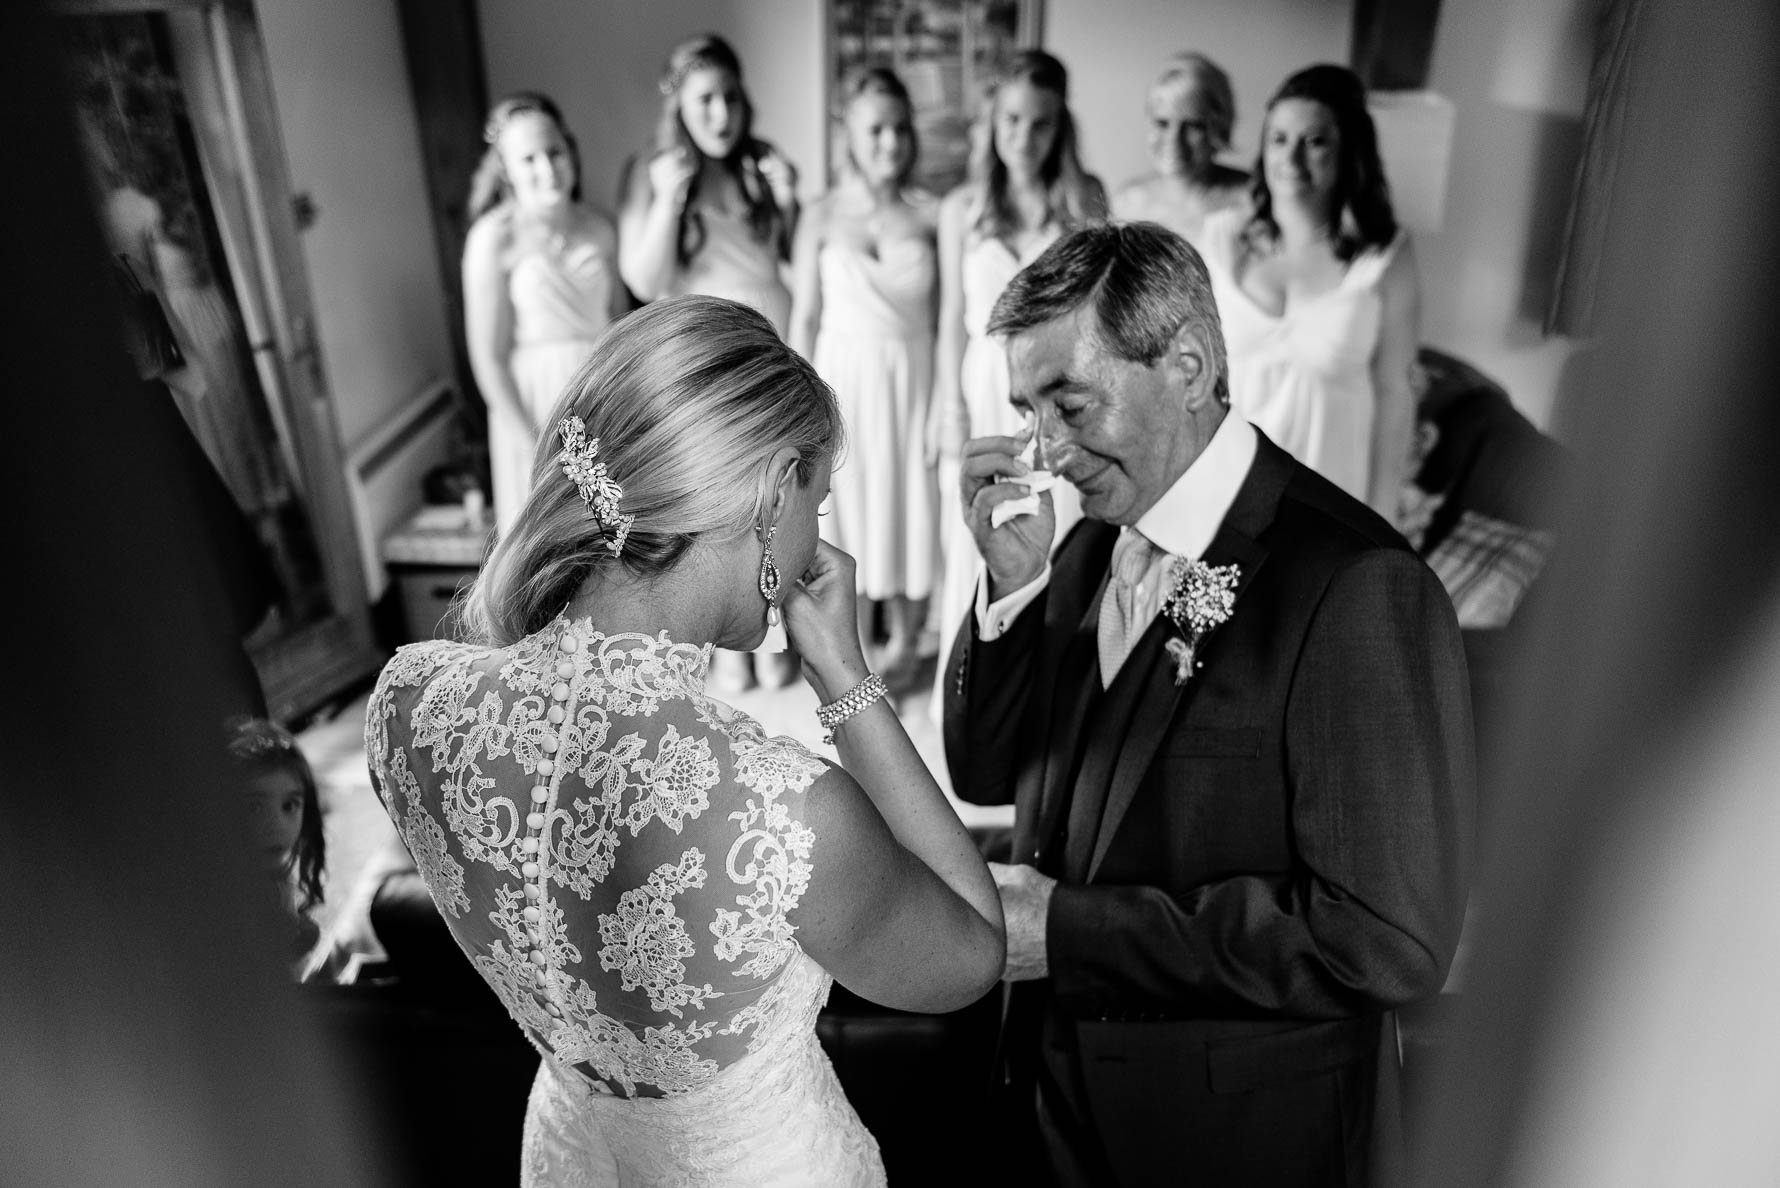 Wedding at Solton Manor-10.jpg